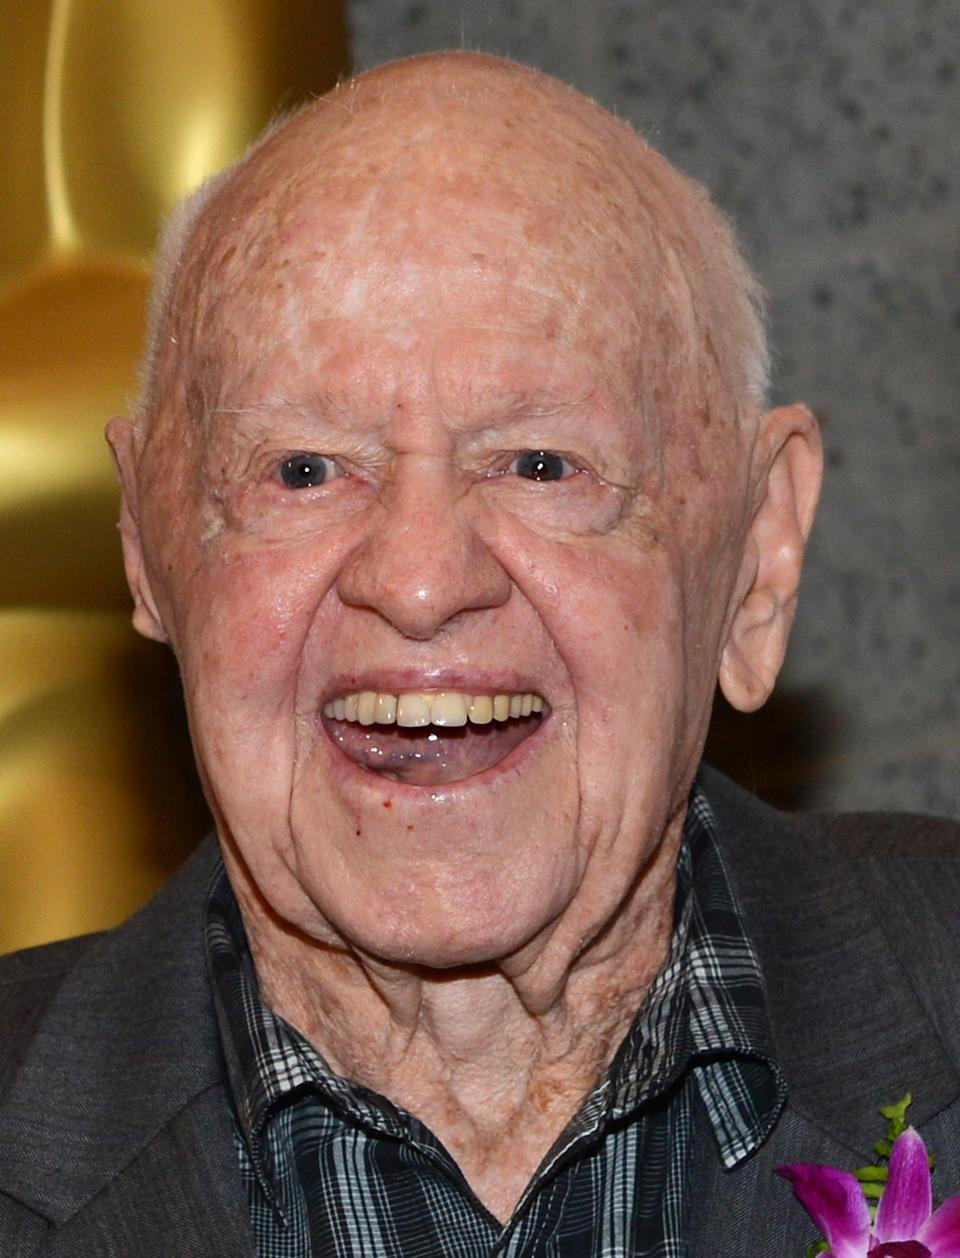 """BEVERLY HILLS, CA - JULY 09: Actor Mickey Rooney arrives at The Academy of Motion Pictures Arts and Science's """"The Last 70mm Film Festival"""" Screening Of """"It's A Mad, Mad, Mad, Mad World"""" at AMPAS Samuel Goldwyn Theater on July 9, 2012 in Beverly Hills, California. (Photo by Michael Buckner/Getty Images)"""